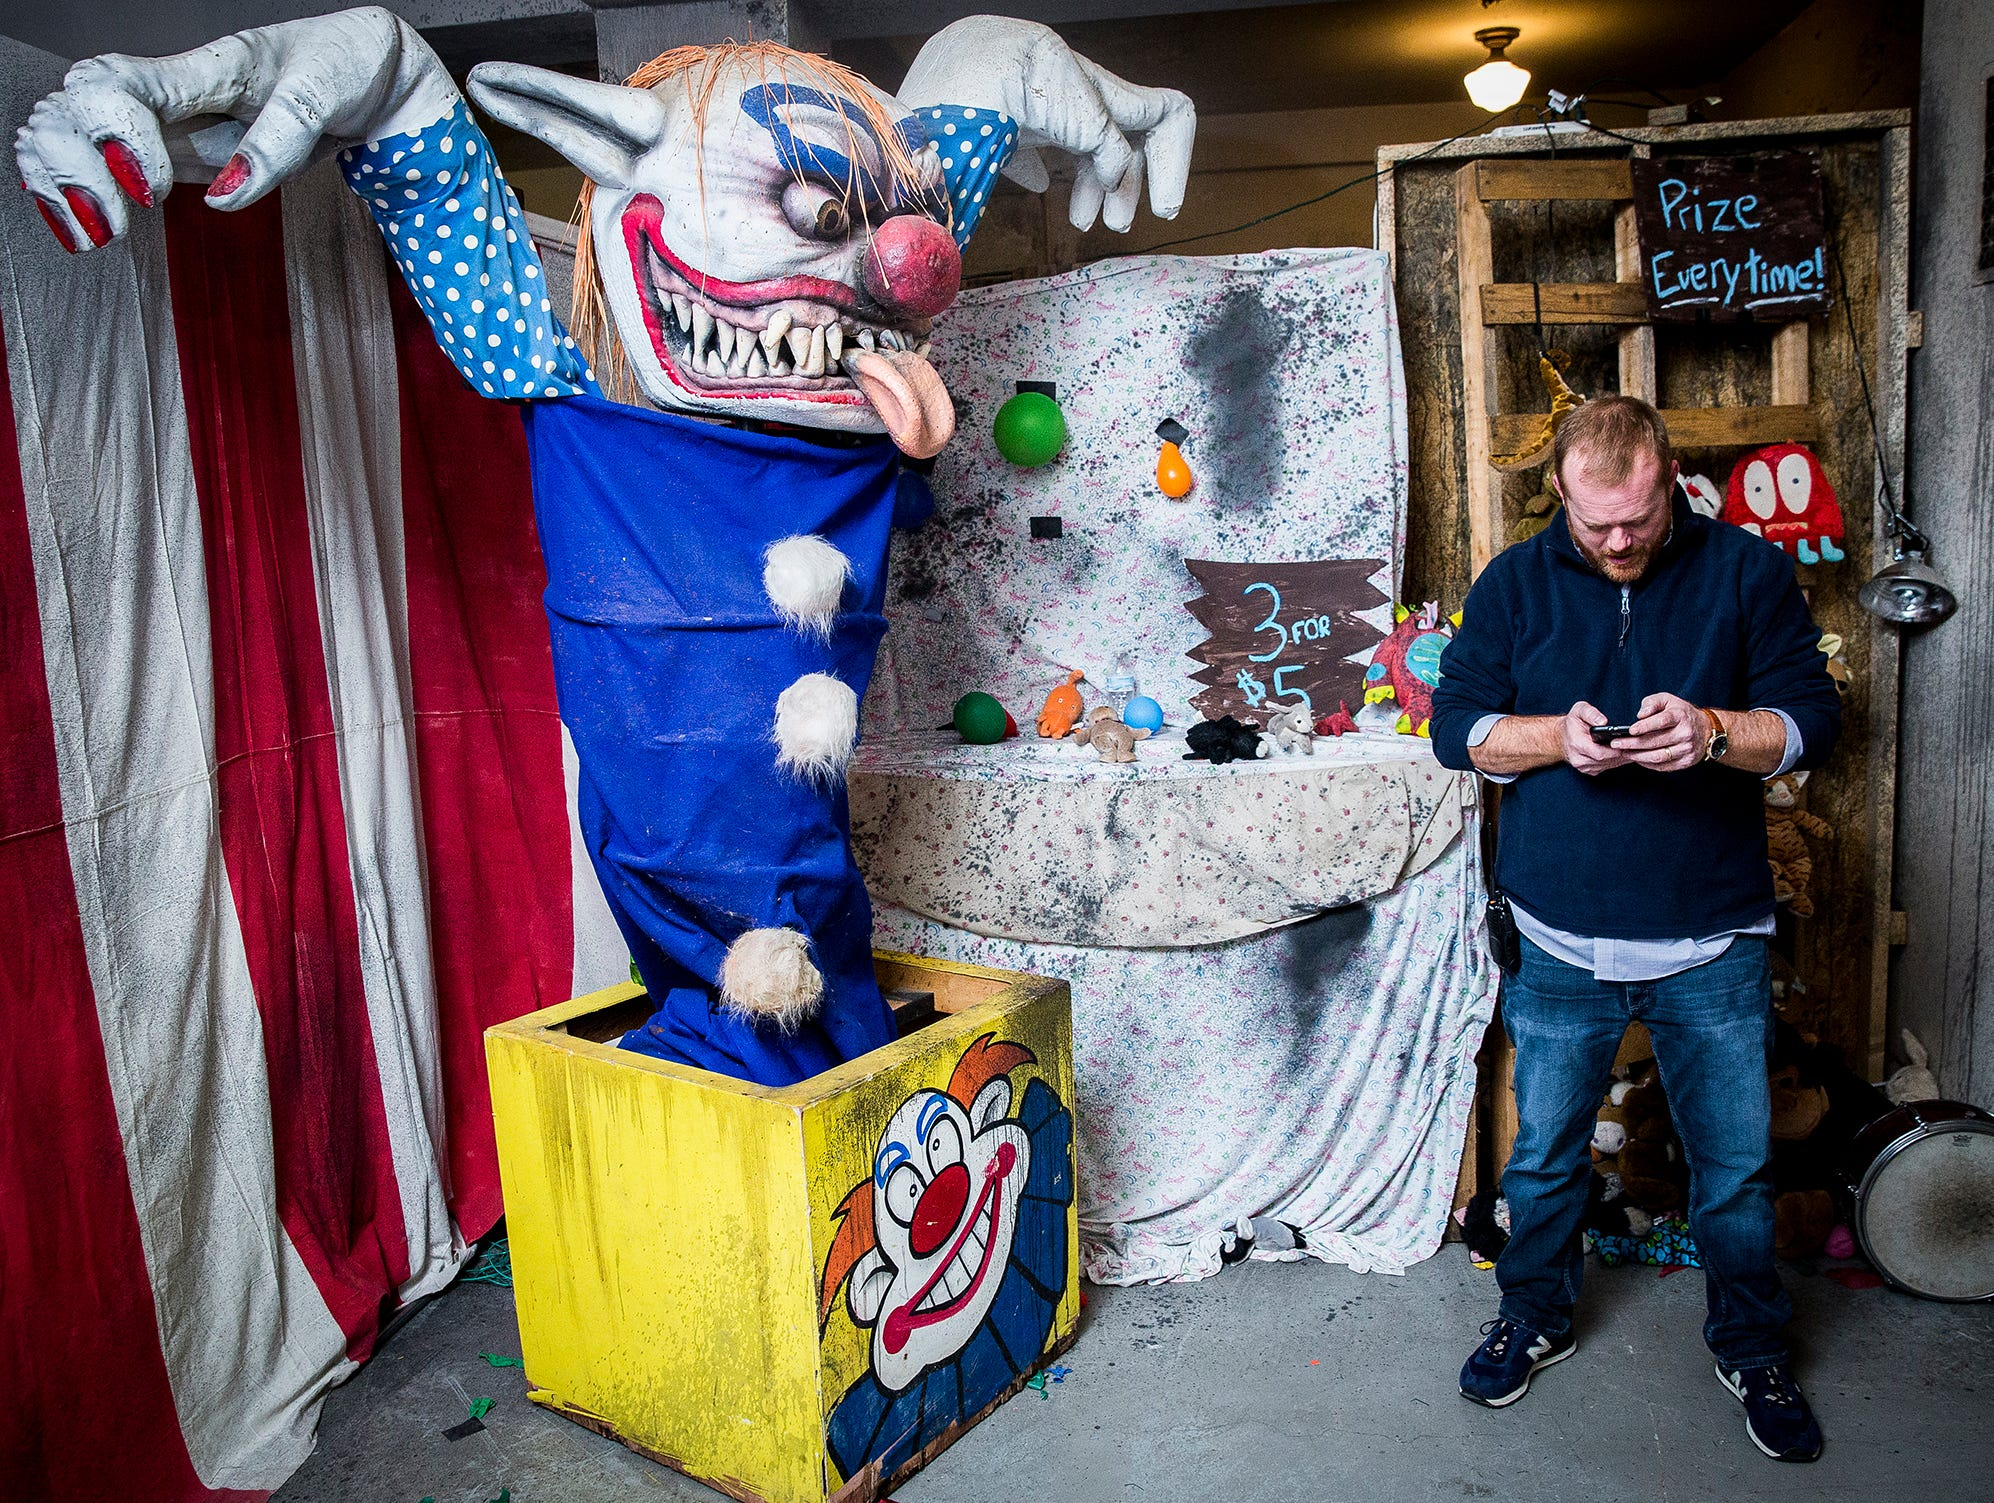 Jeff Robinson, associate executive director at Cornerstone, walks the future site of this year's Christmas Scarol, the annual Christmas-themed haunted house. The haunt opens Dec. 15.